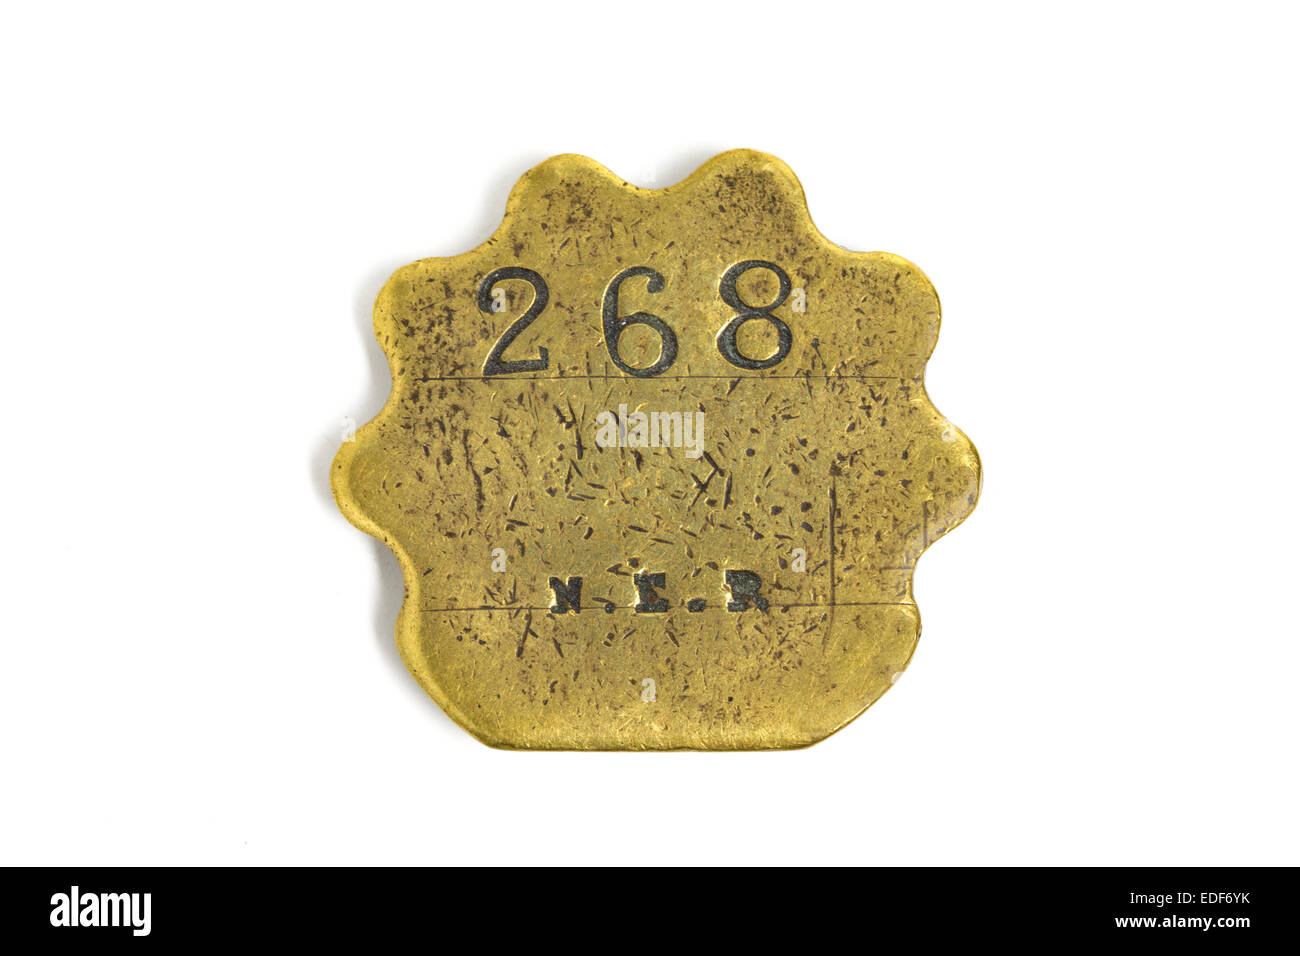 Brass pay token, or tally, issued by North Eastern Railway (NER) before grouping in 1923. - Stock Image